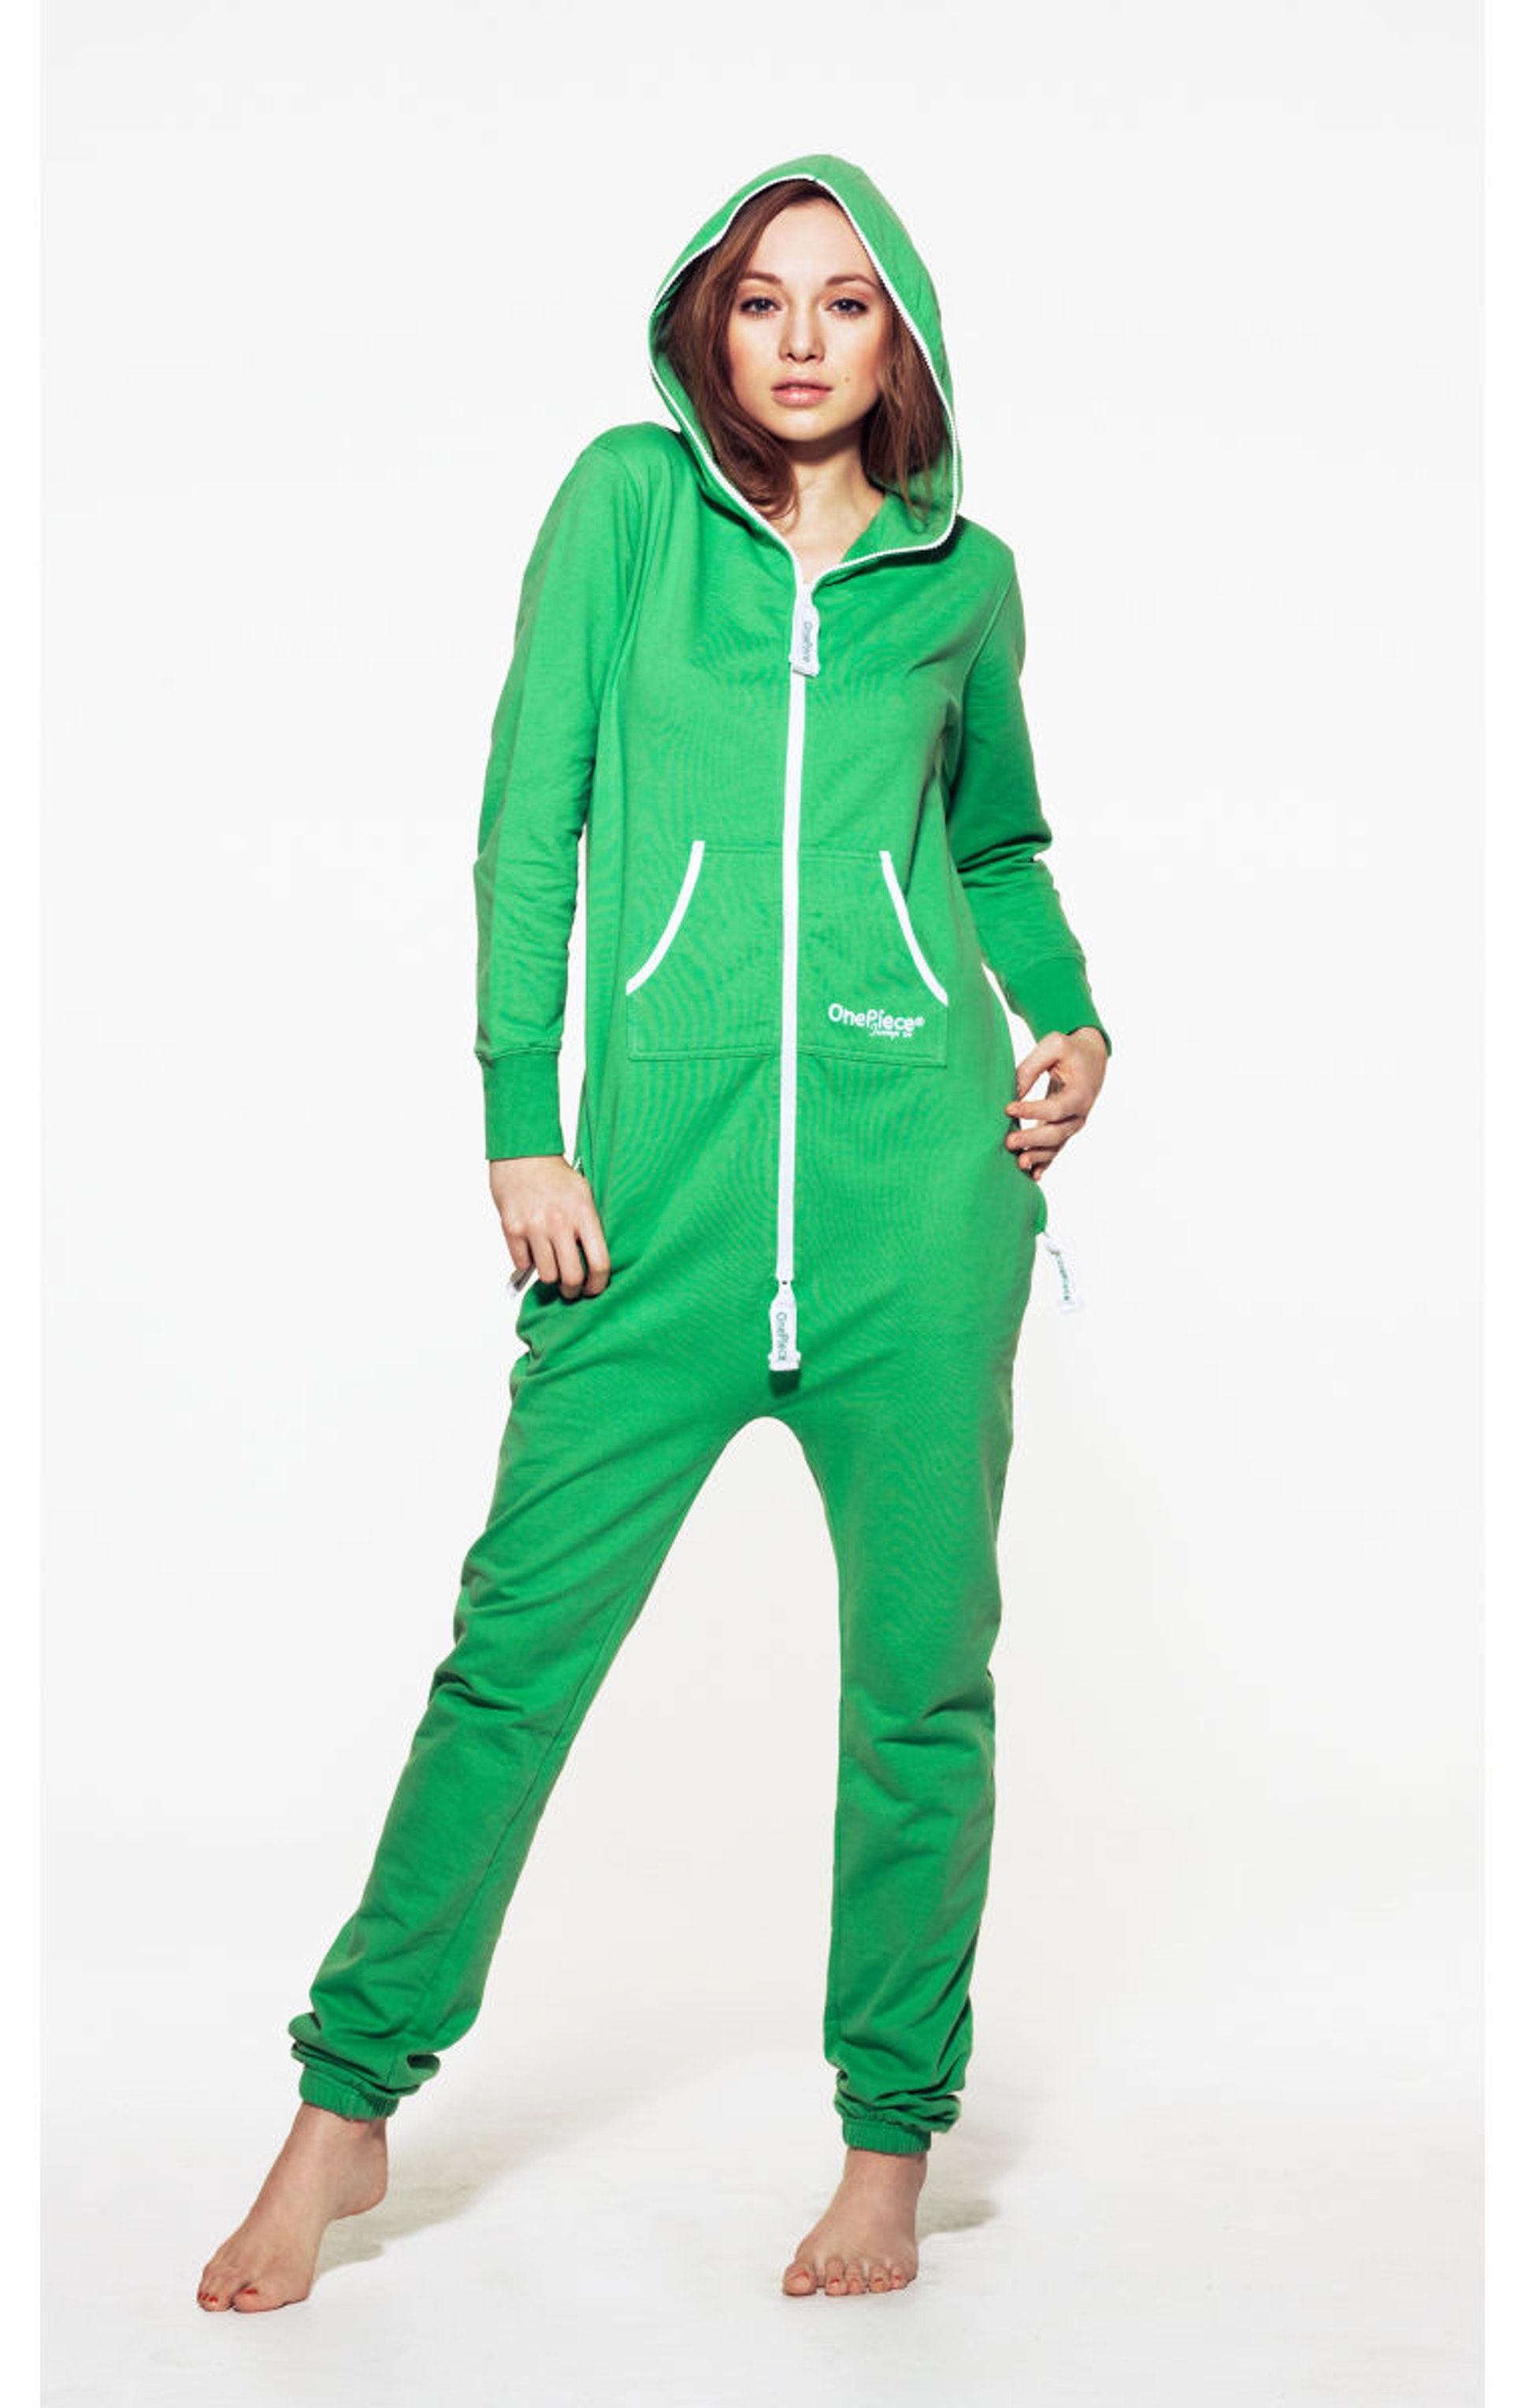 Shop for green onesie online at Target. Free shipping on purchases over $35 and save 5% every day with your Target REDcard.